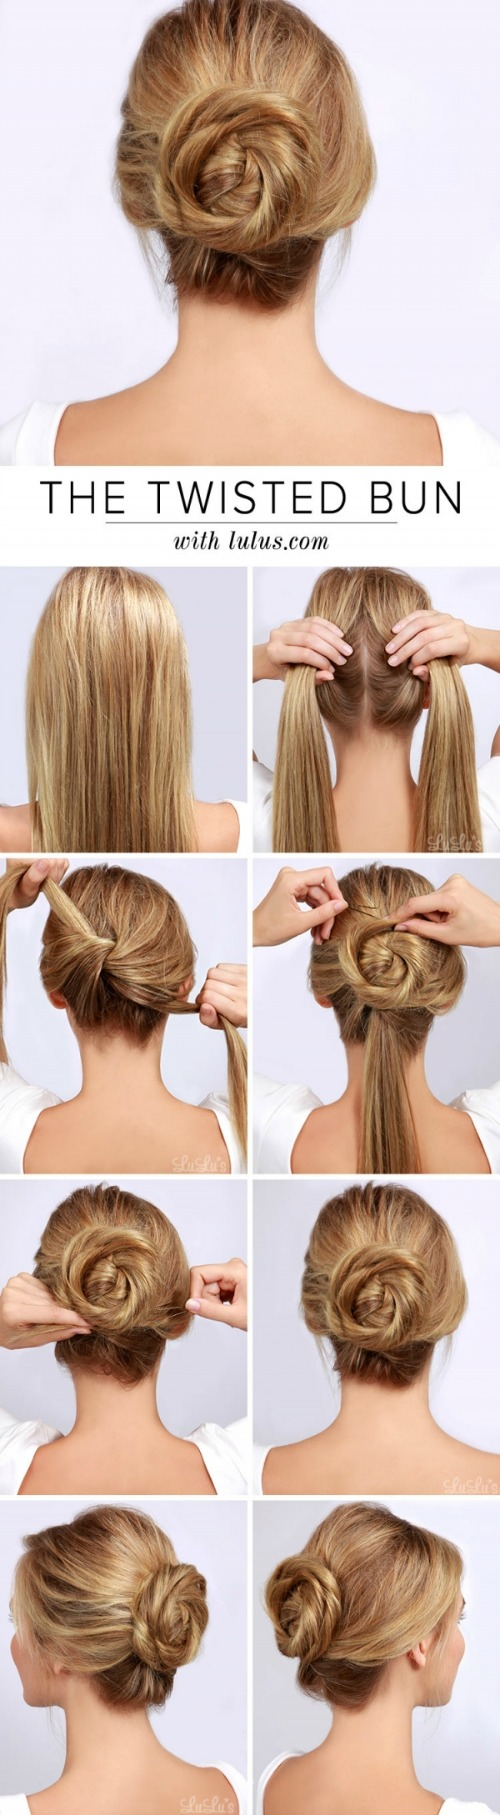 Easy And Elegant Hairstyles For Hot Days Starts At 60